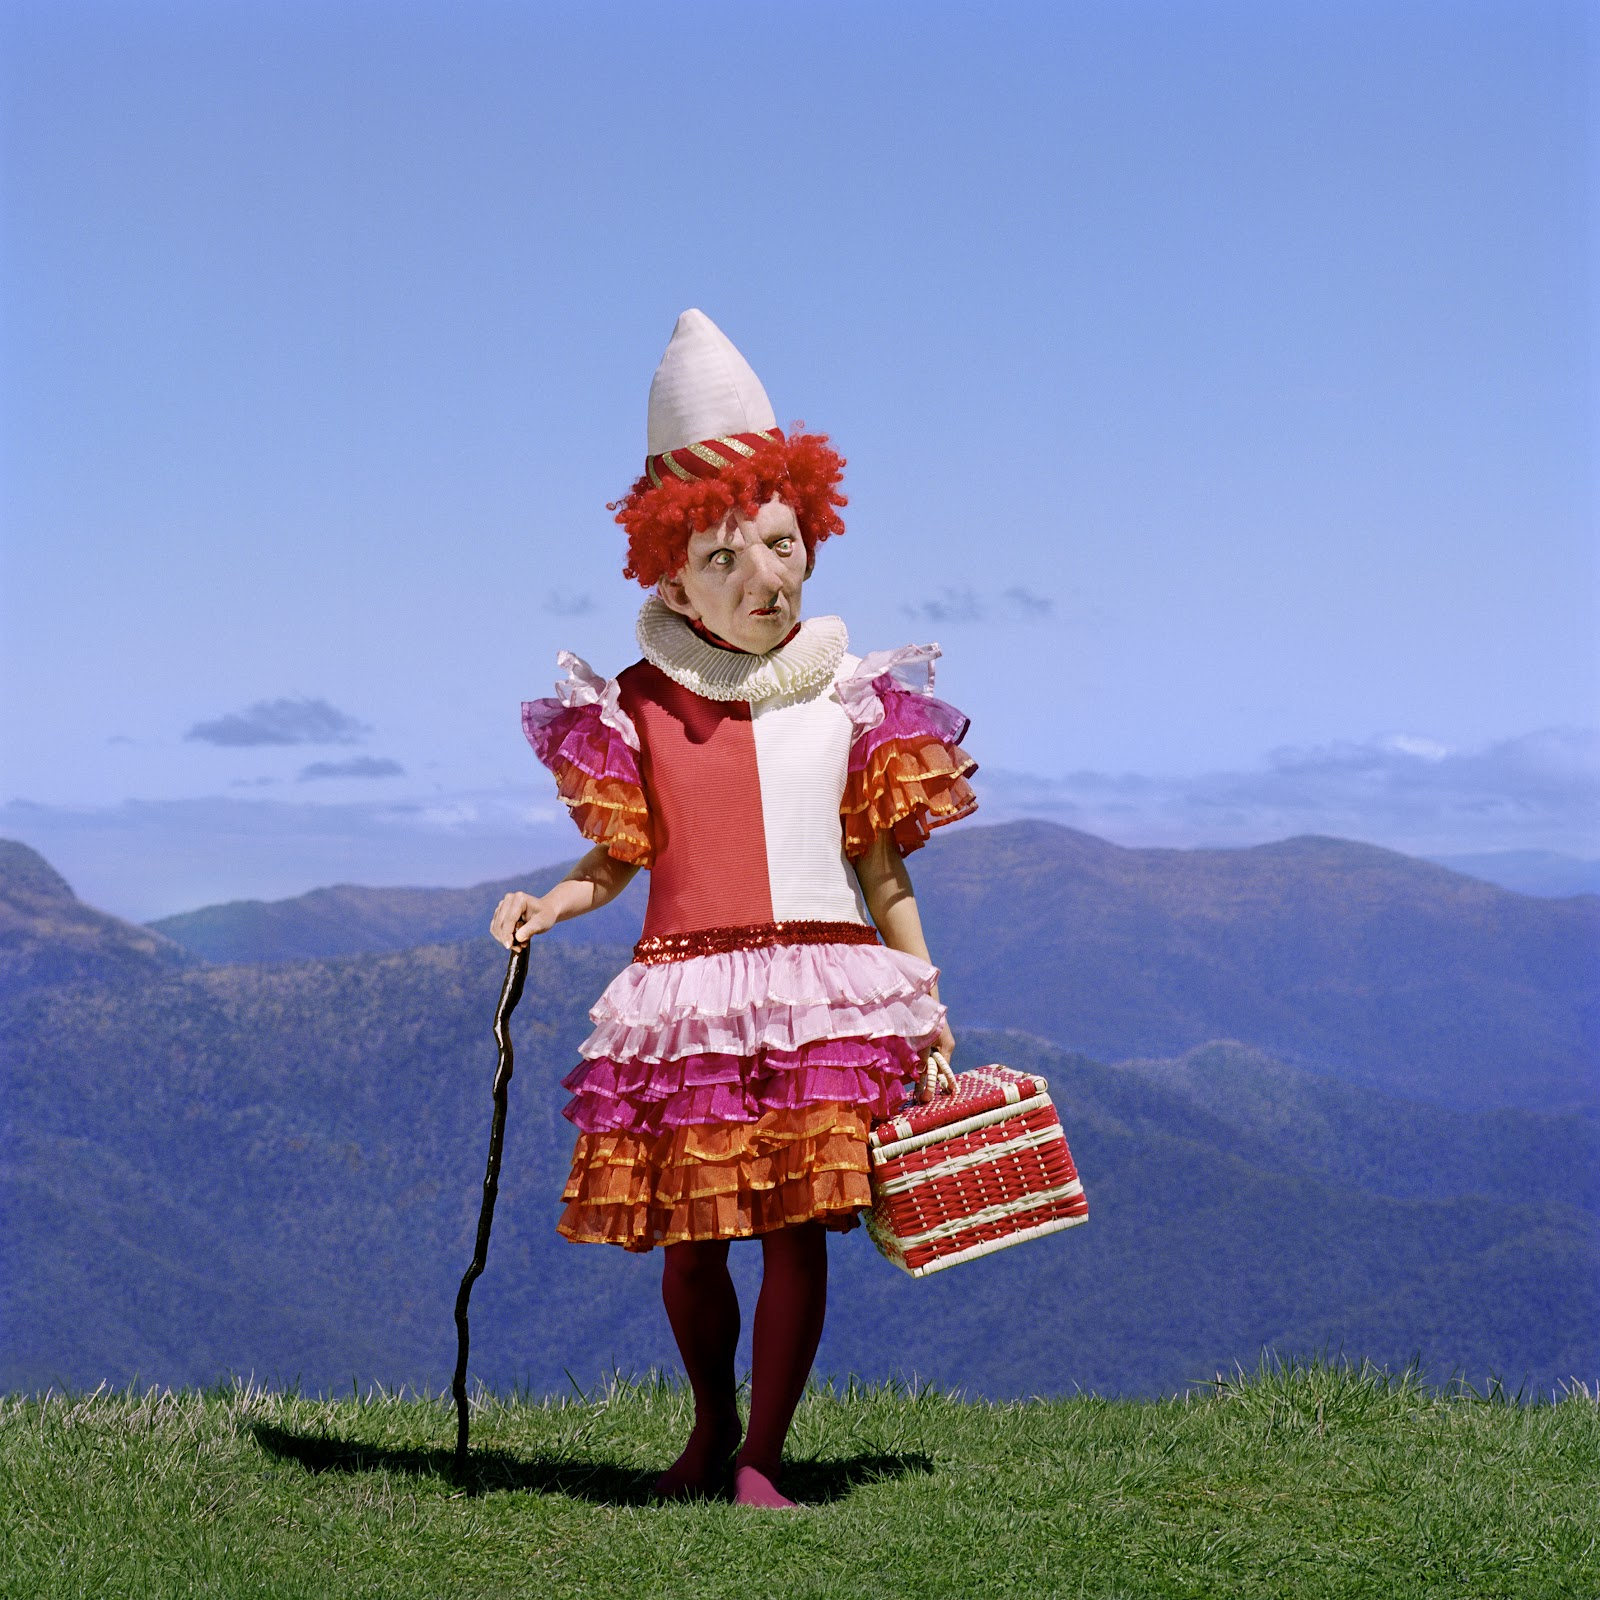 Polixeni Papapetrou: The Ghillies   HuffPost